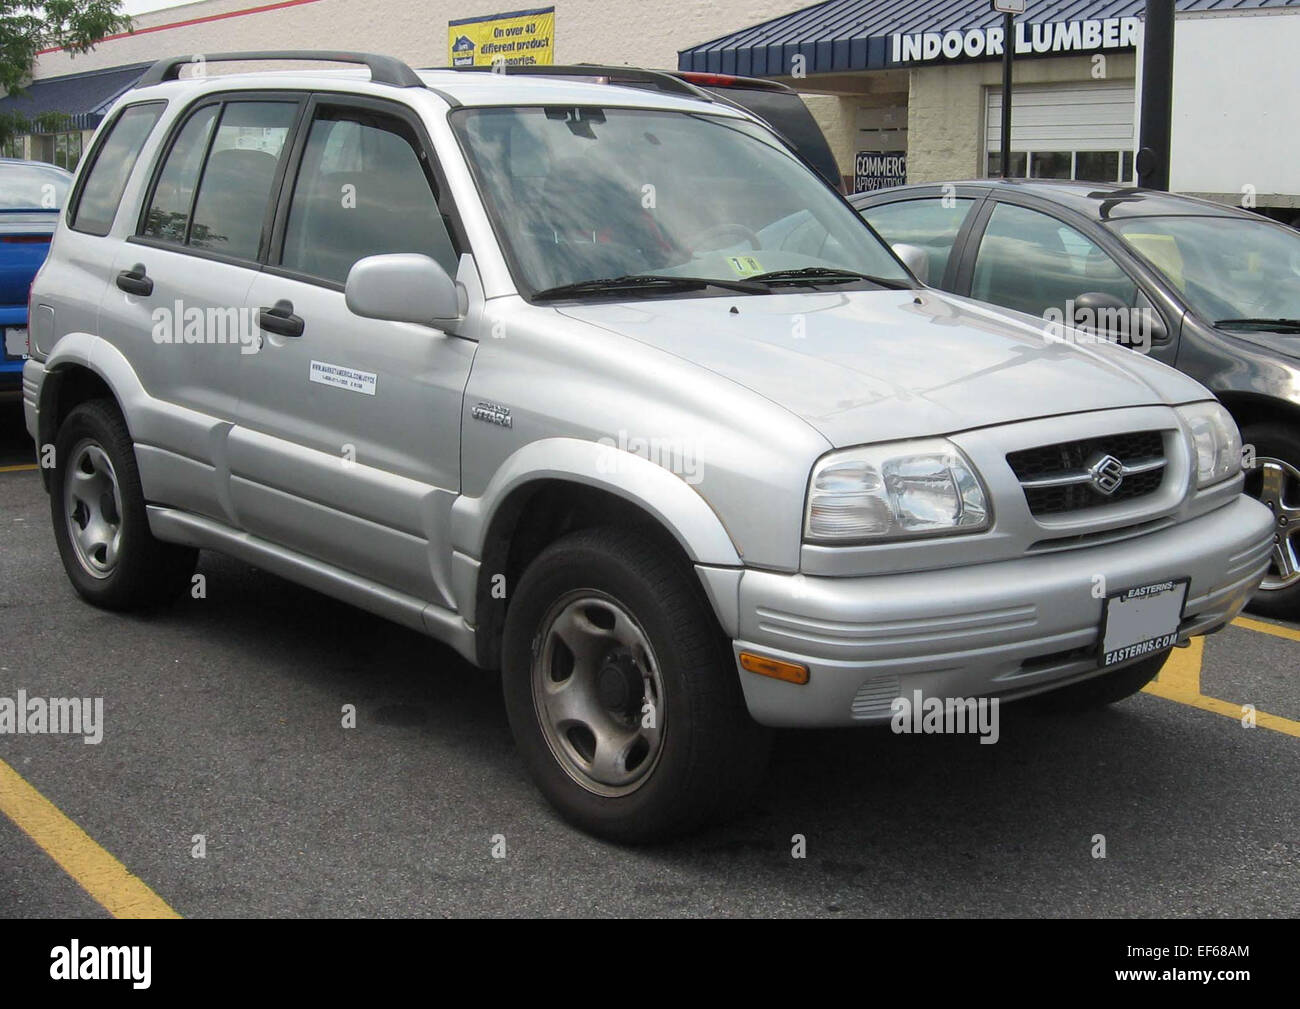 1999 01 Suzuki Grand Vitara Stock Photo: 78199596 - Alamy